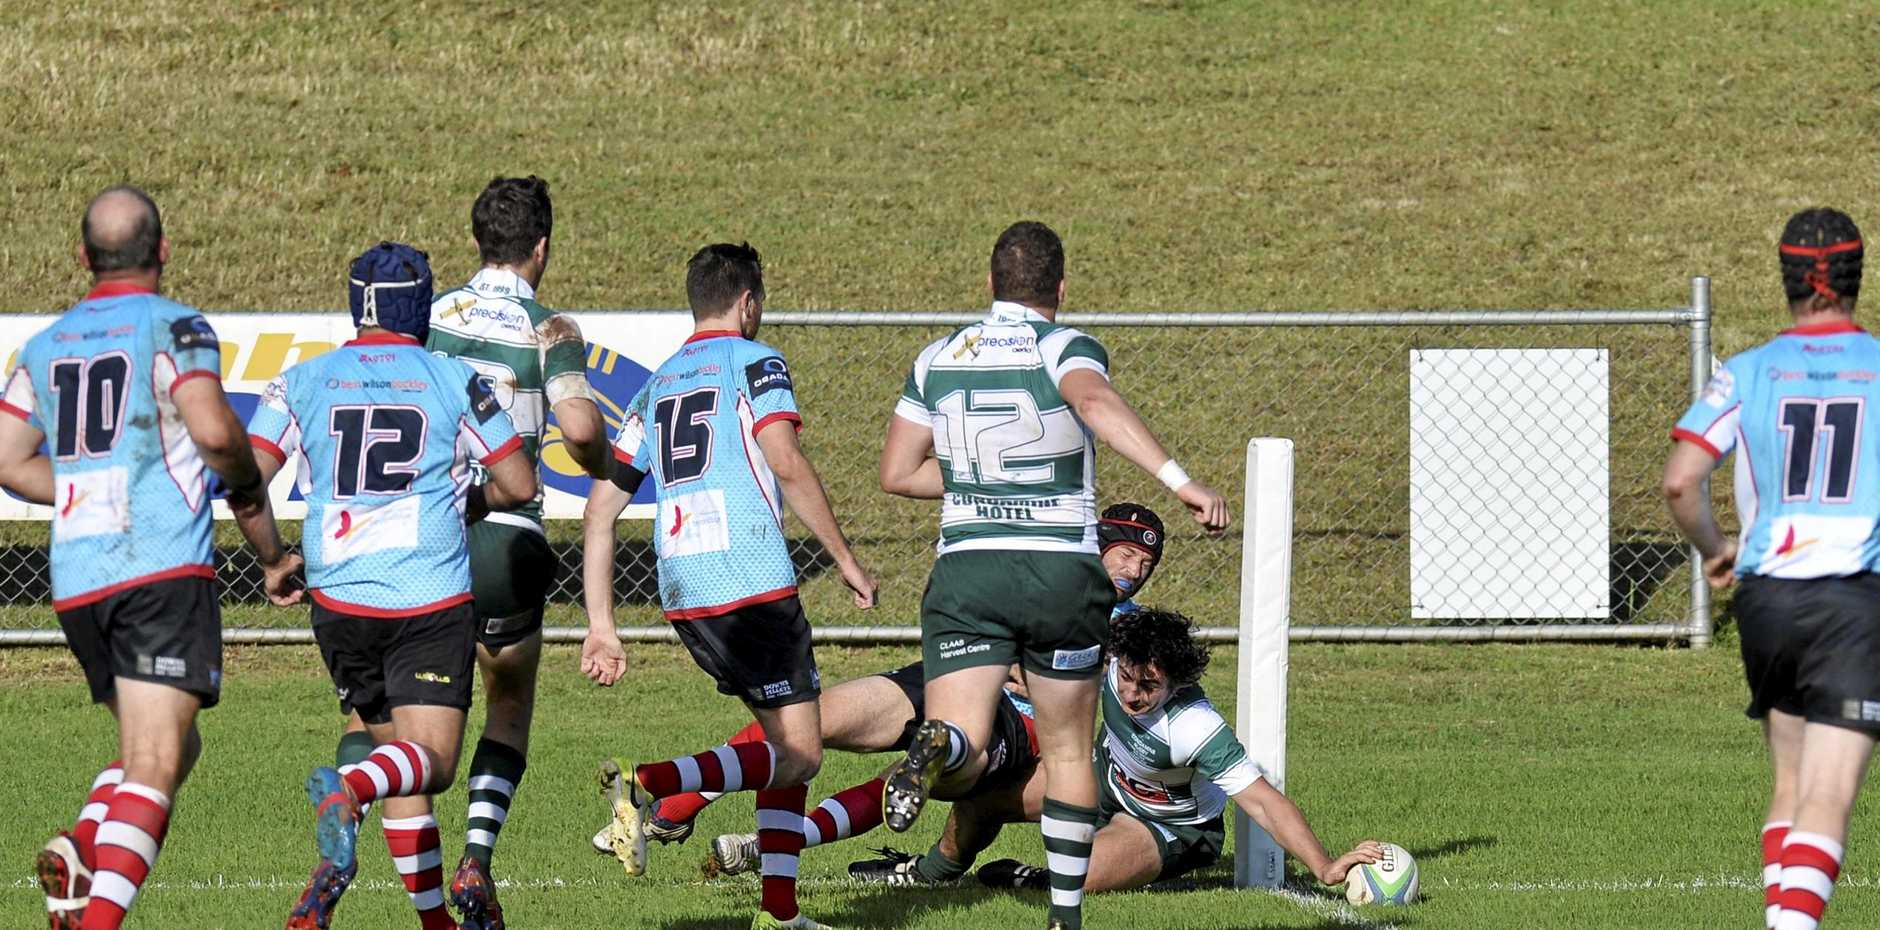 Bill Vary plants the ball for a Condamine try against Toowoomba Rangers during their round-four Risdon Cup match at Gold Park.